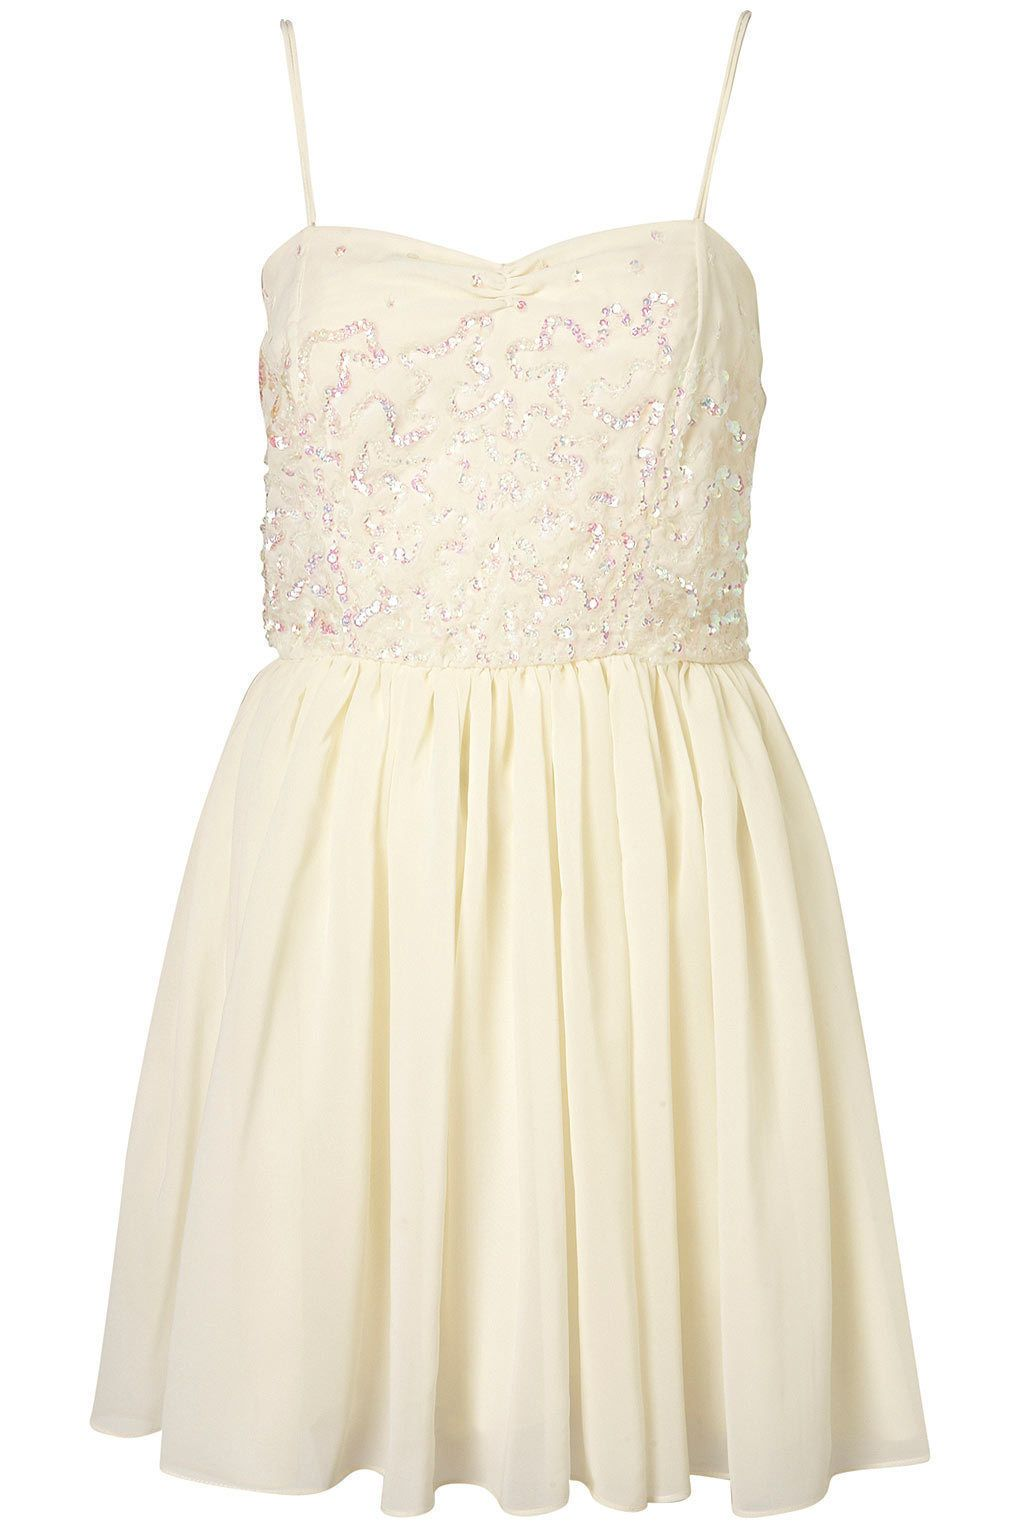 Cool awesome topshop embellished sequined embroidered prom corset